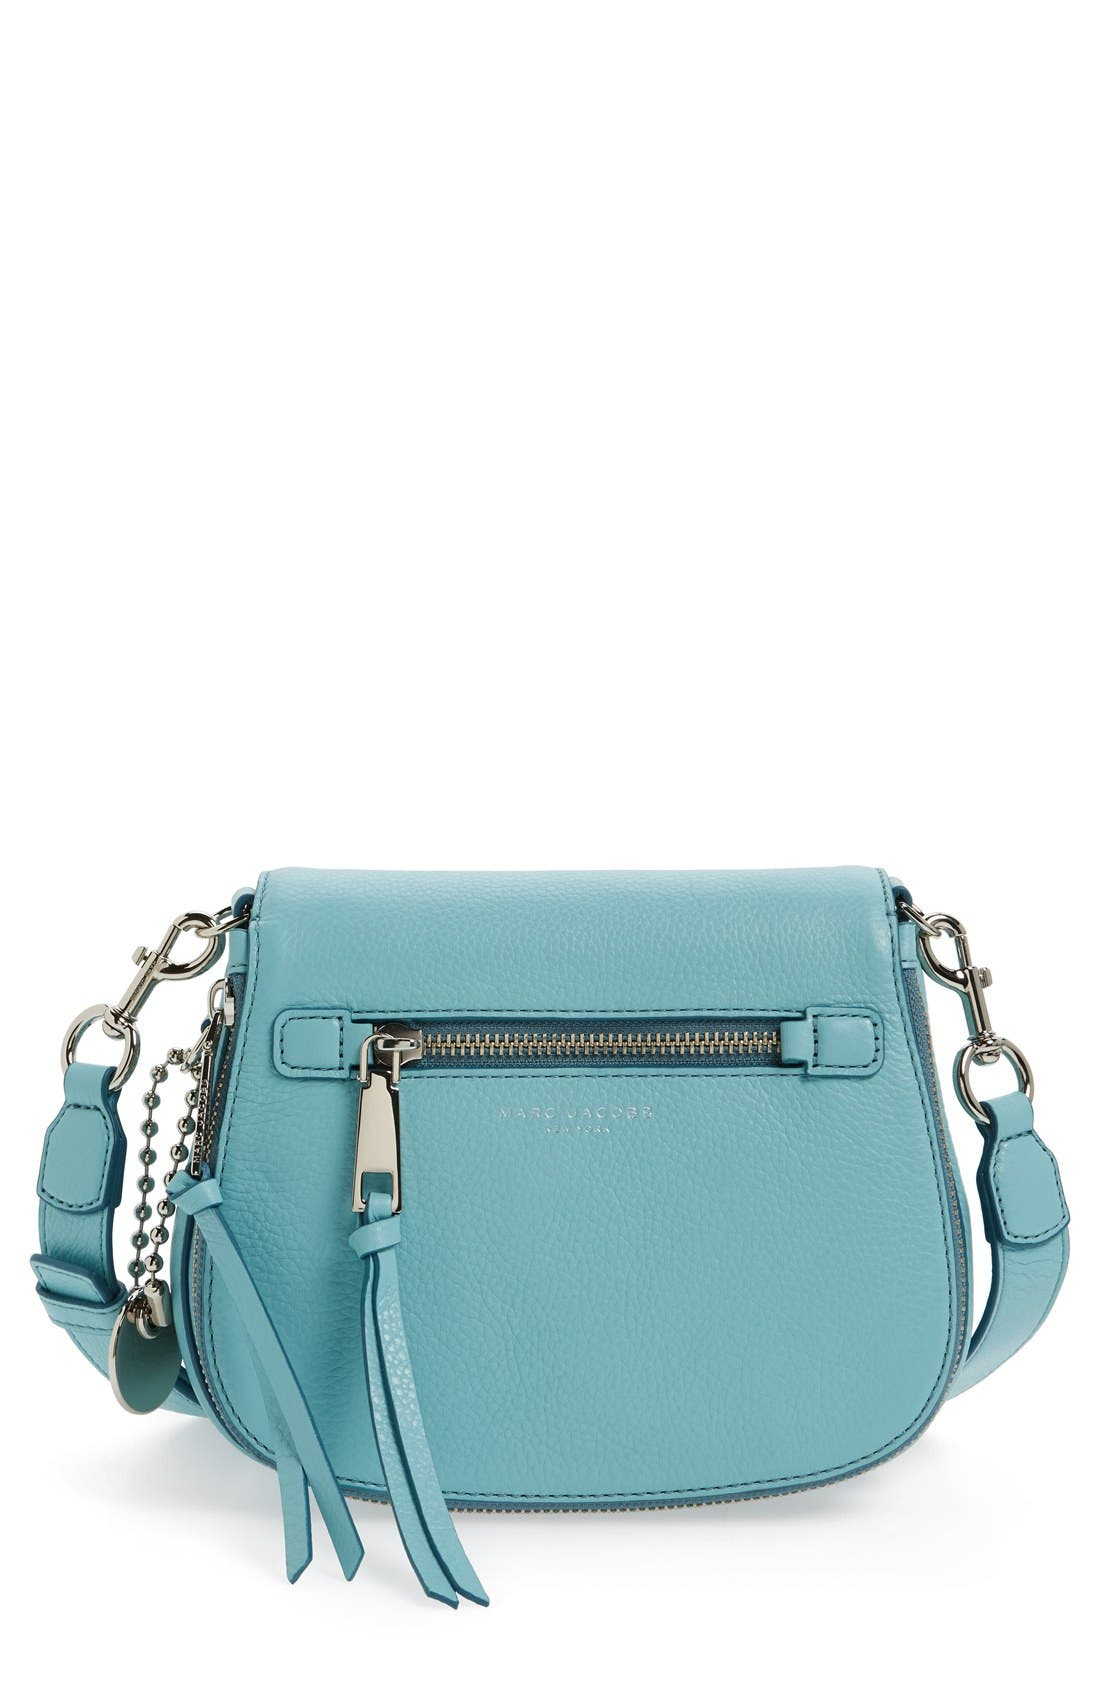 Small Recruit Nomad Pebbled Leather Crossbody Bag,                             Main thumbnail 10, color,